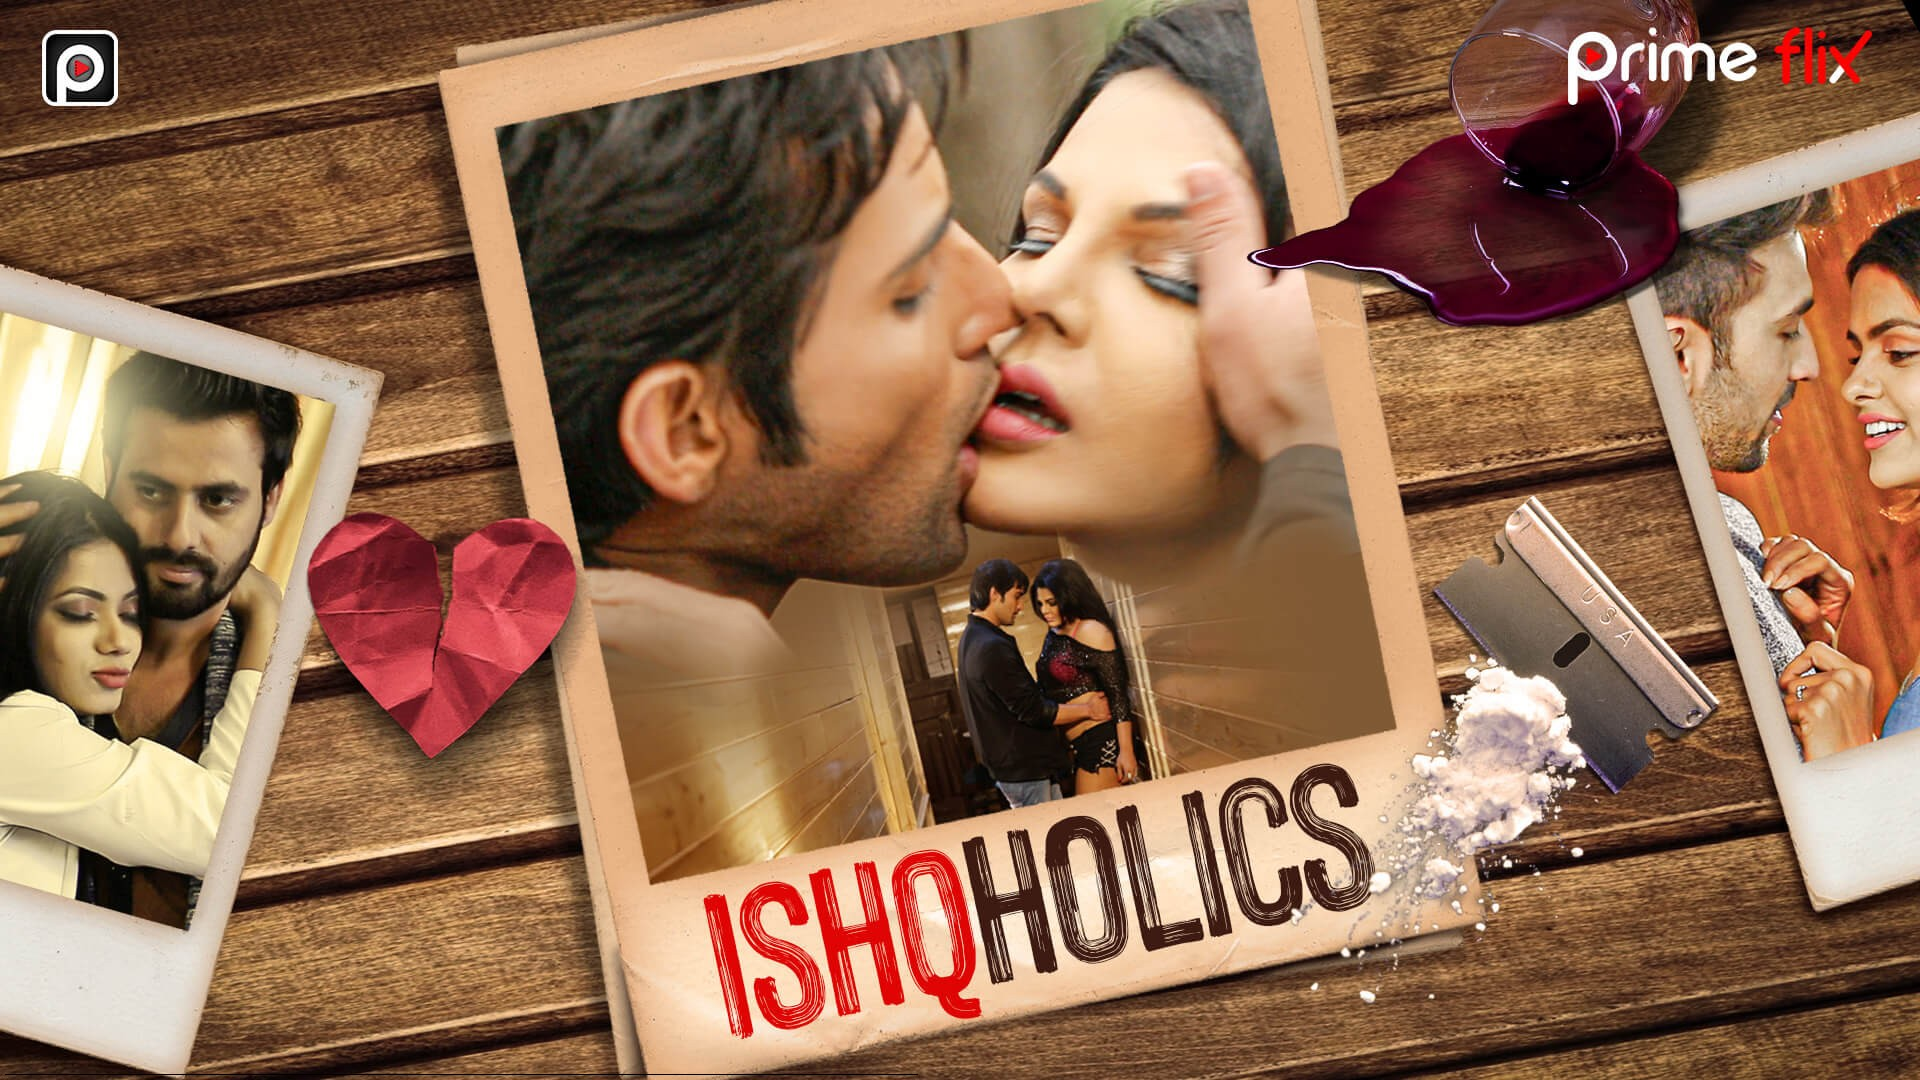 18+ Ishcoholic (2019) S01 Hindi Complete Hot Web Series 267MB HDRip Download